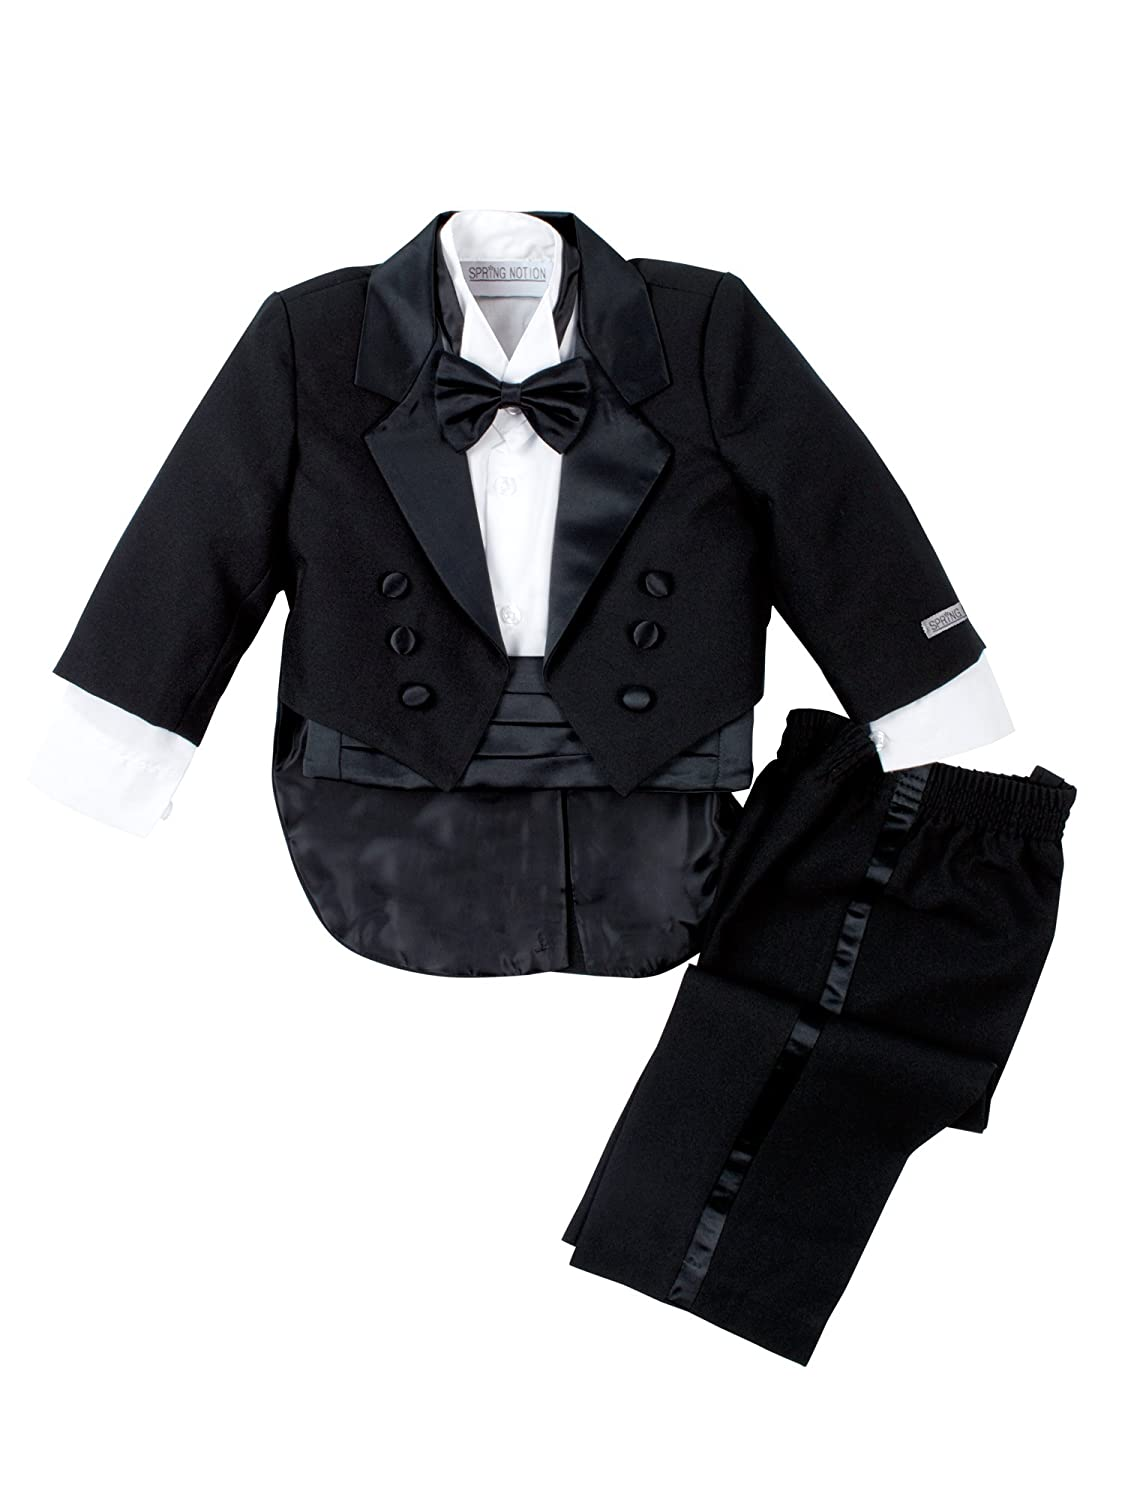 Spring Notion Baby Boys Black Classic Tuxedo with Tail ERF008-SNB-008.BK